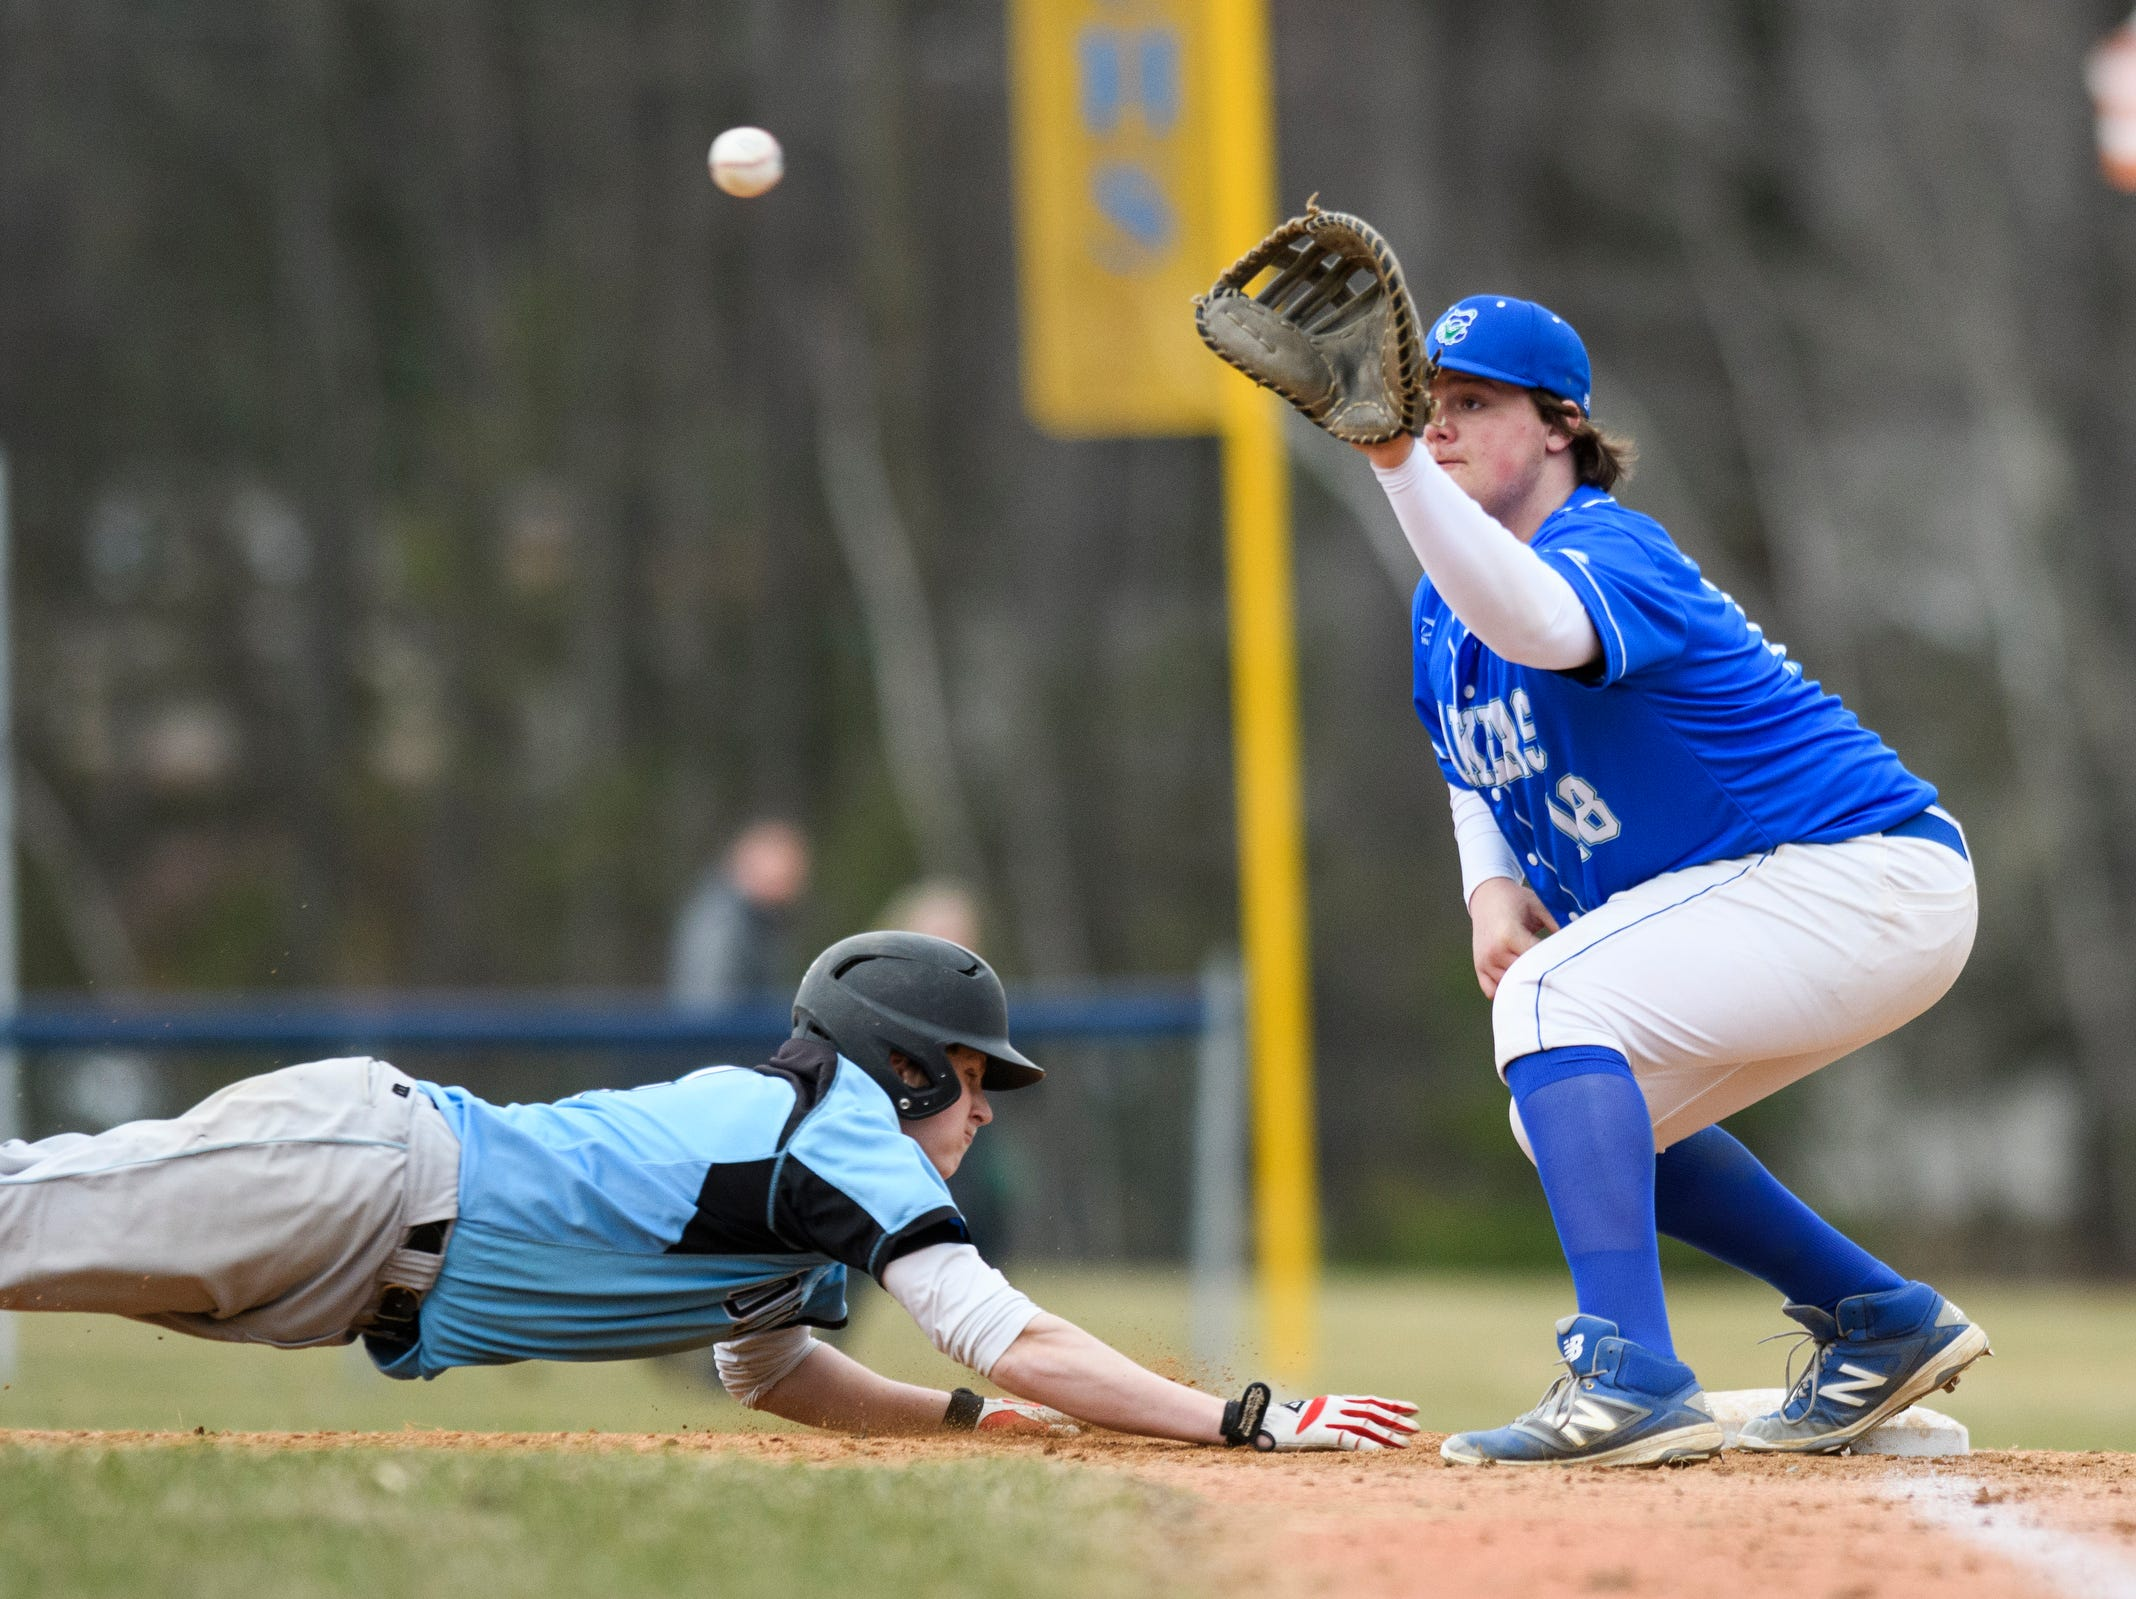 Colchester' first baseman Justin Dattilio (18) plays the ball on a pick off attempt during the boys baseball game between the South Burlington Wolves and the Colchester Lakers at Colchester high school on Thursday afternoon April 18, 2019 in Colchester, Vermont.